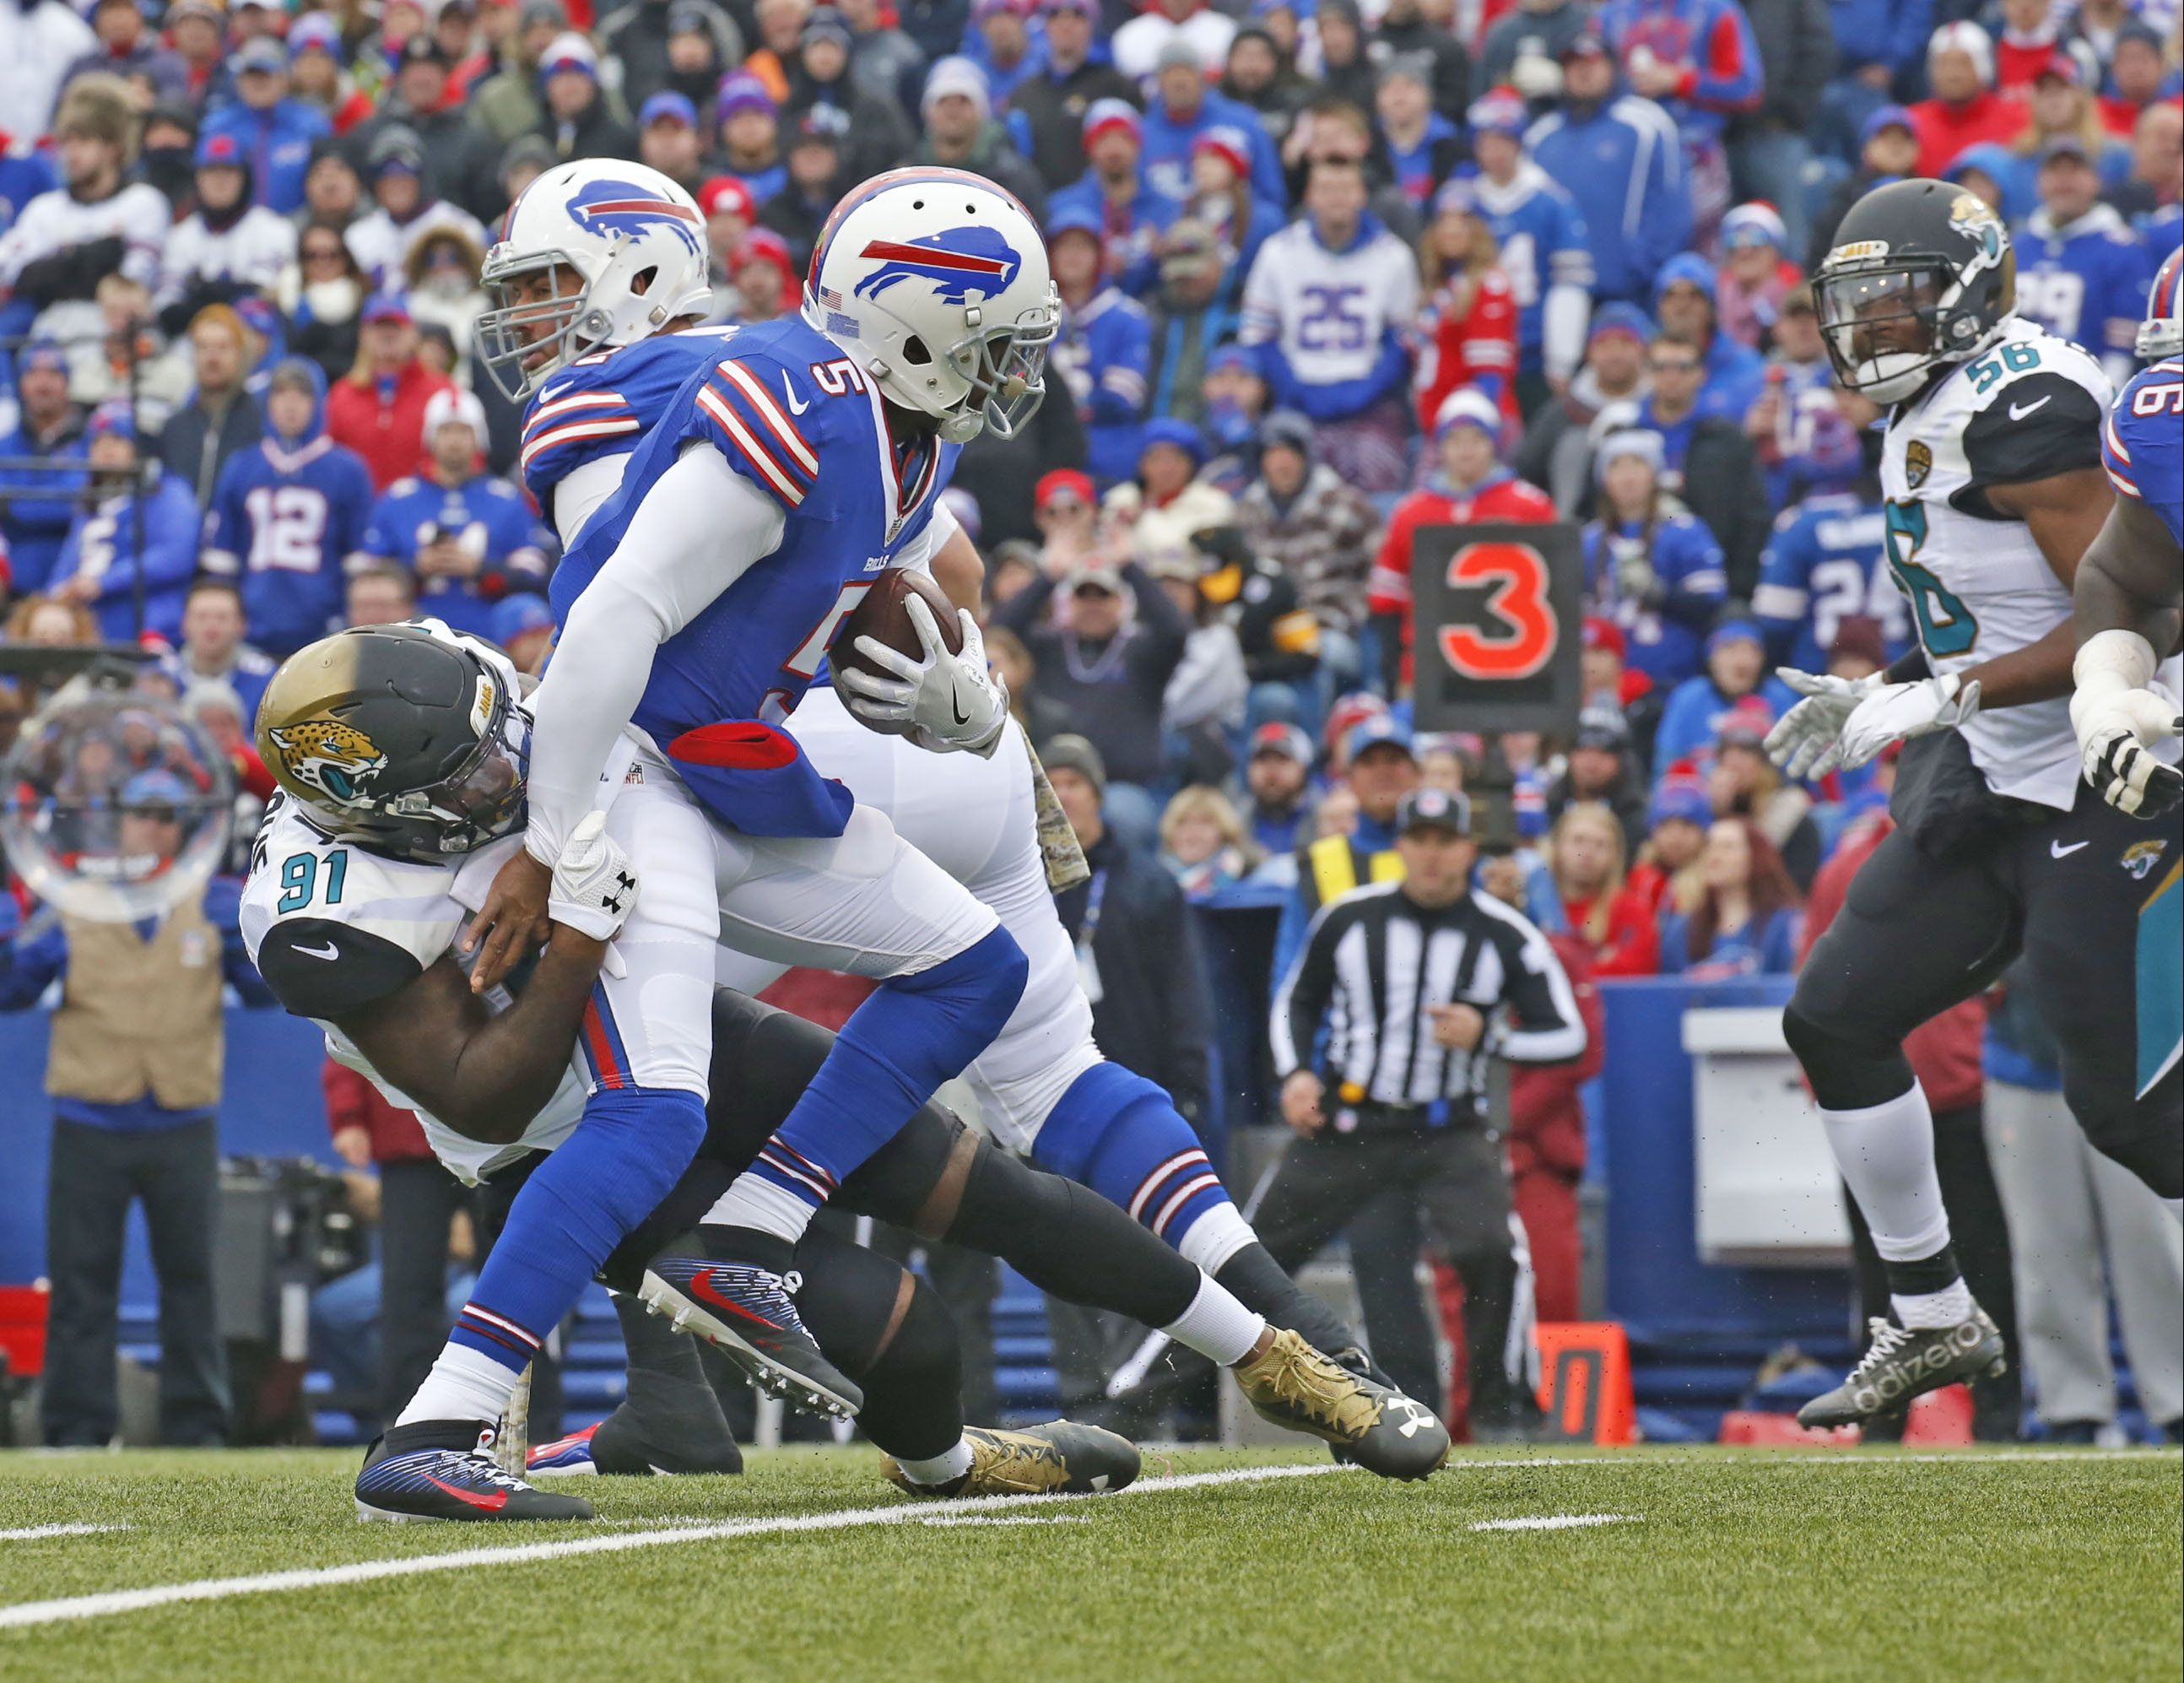 Jaguar Yannick Ngakoue sacks Tyrod Taylor in the first half. (Robert Kirkham/Buffalo News)